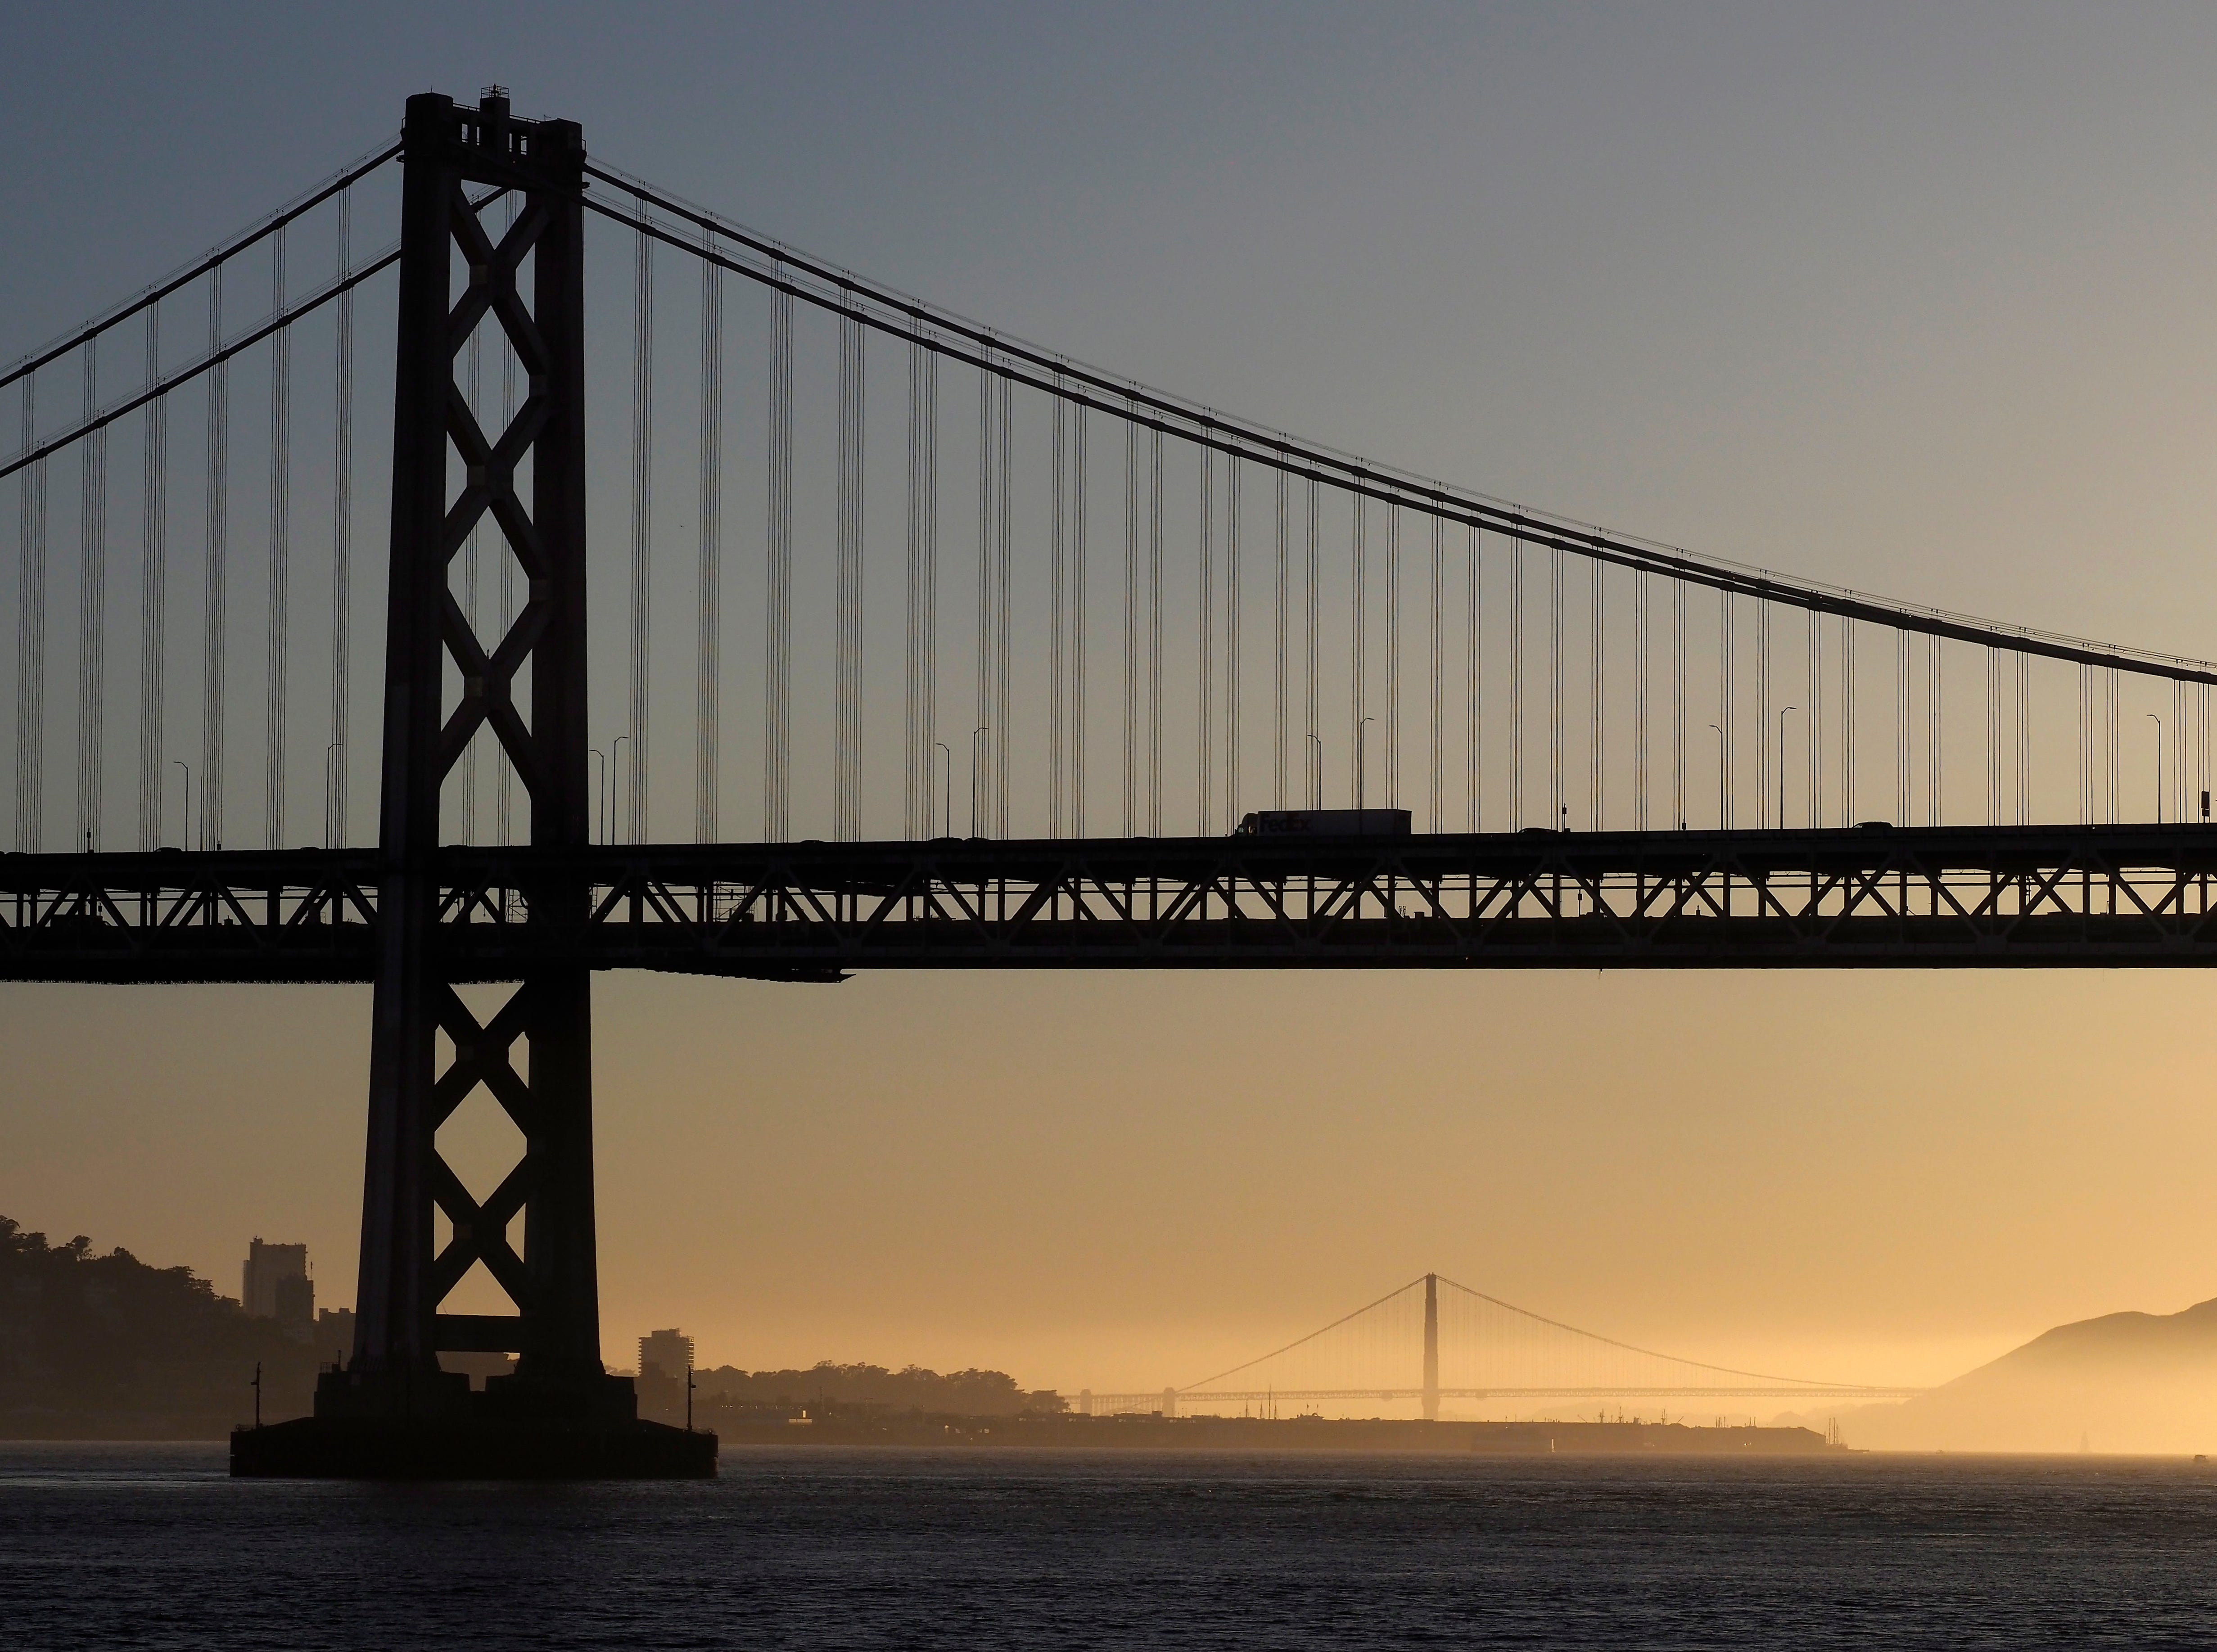 epa06729645 The San Francisco Bay Bridge in the foreground and the Golden Gate Bridge in the background at sunset as seen from the San Francisco Bay in San Francisco, California, USA, 11 May 2018.  EPA-EFE/JOHN G. MABANGLO ORG XMIT: JGM32